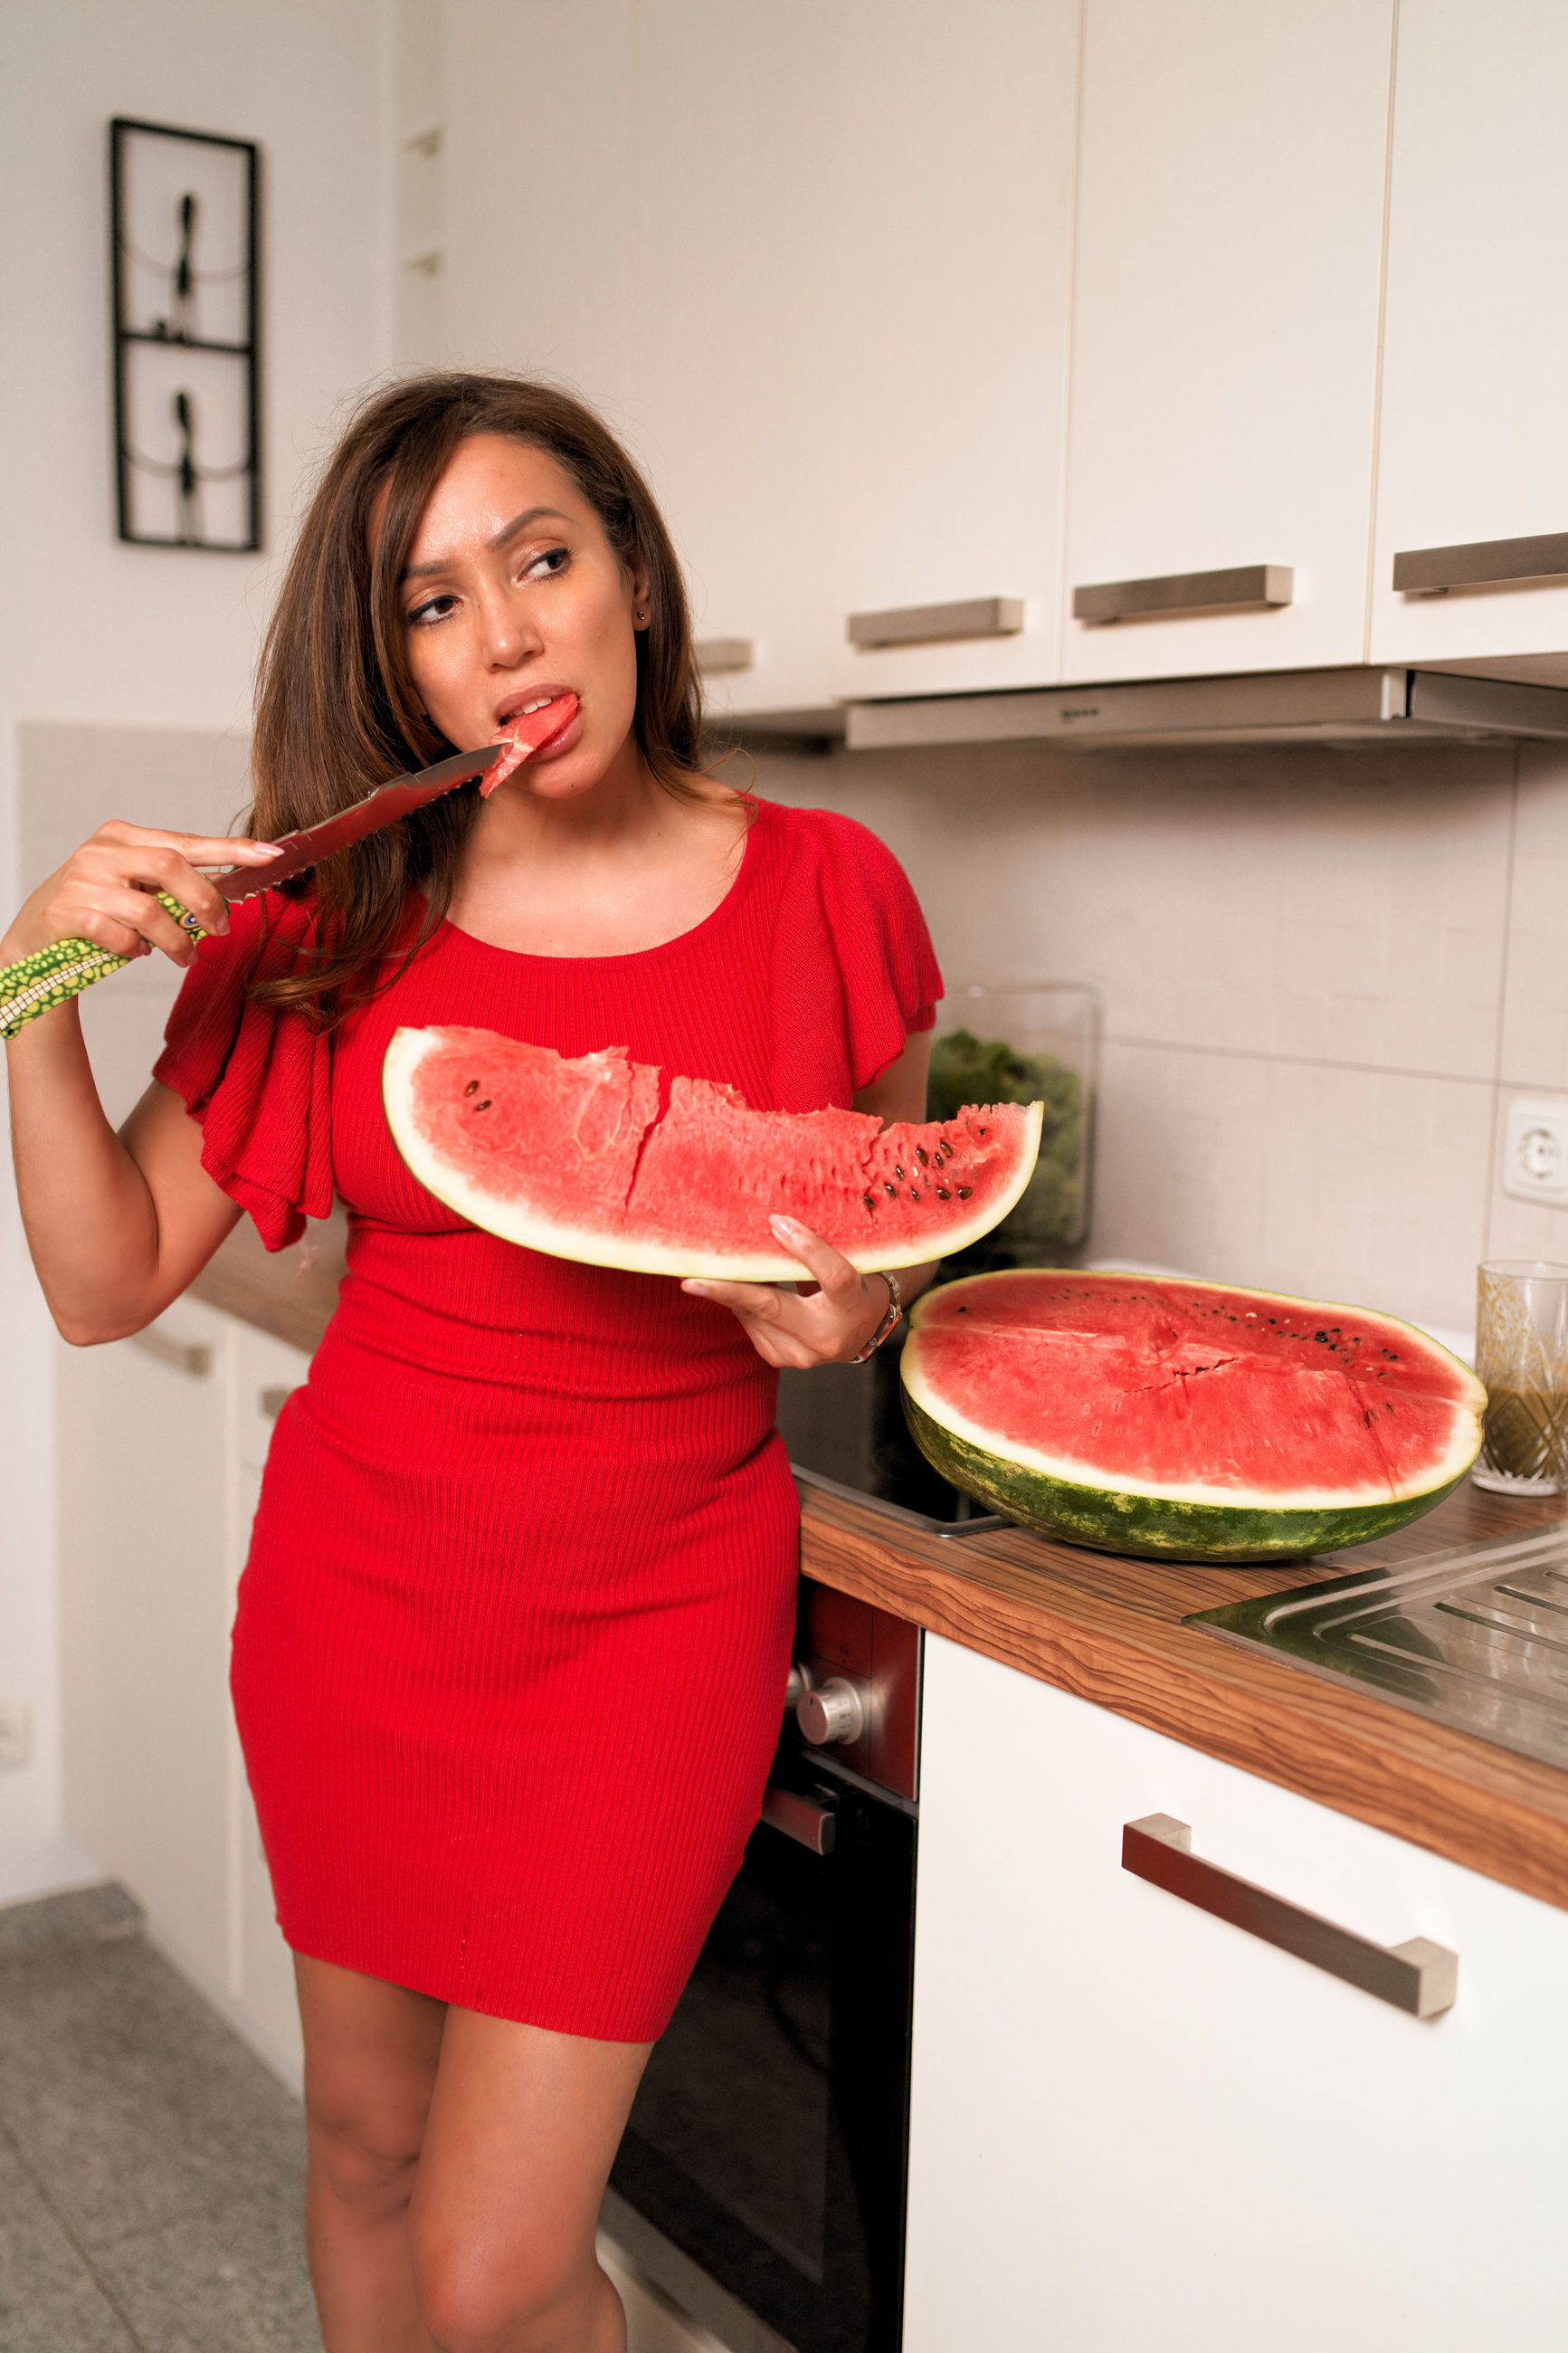 red, food, food and drink, kitchen, one person, healthy eating, wellbeing, domestic room, fruit, domestic kitchen, lifestyles, indoors, women, front view, freshness, home, domestic life, young adult, preparation, vegetable, preparing food, beautiful woman